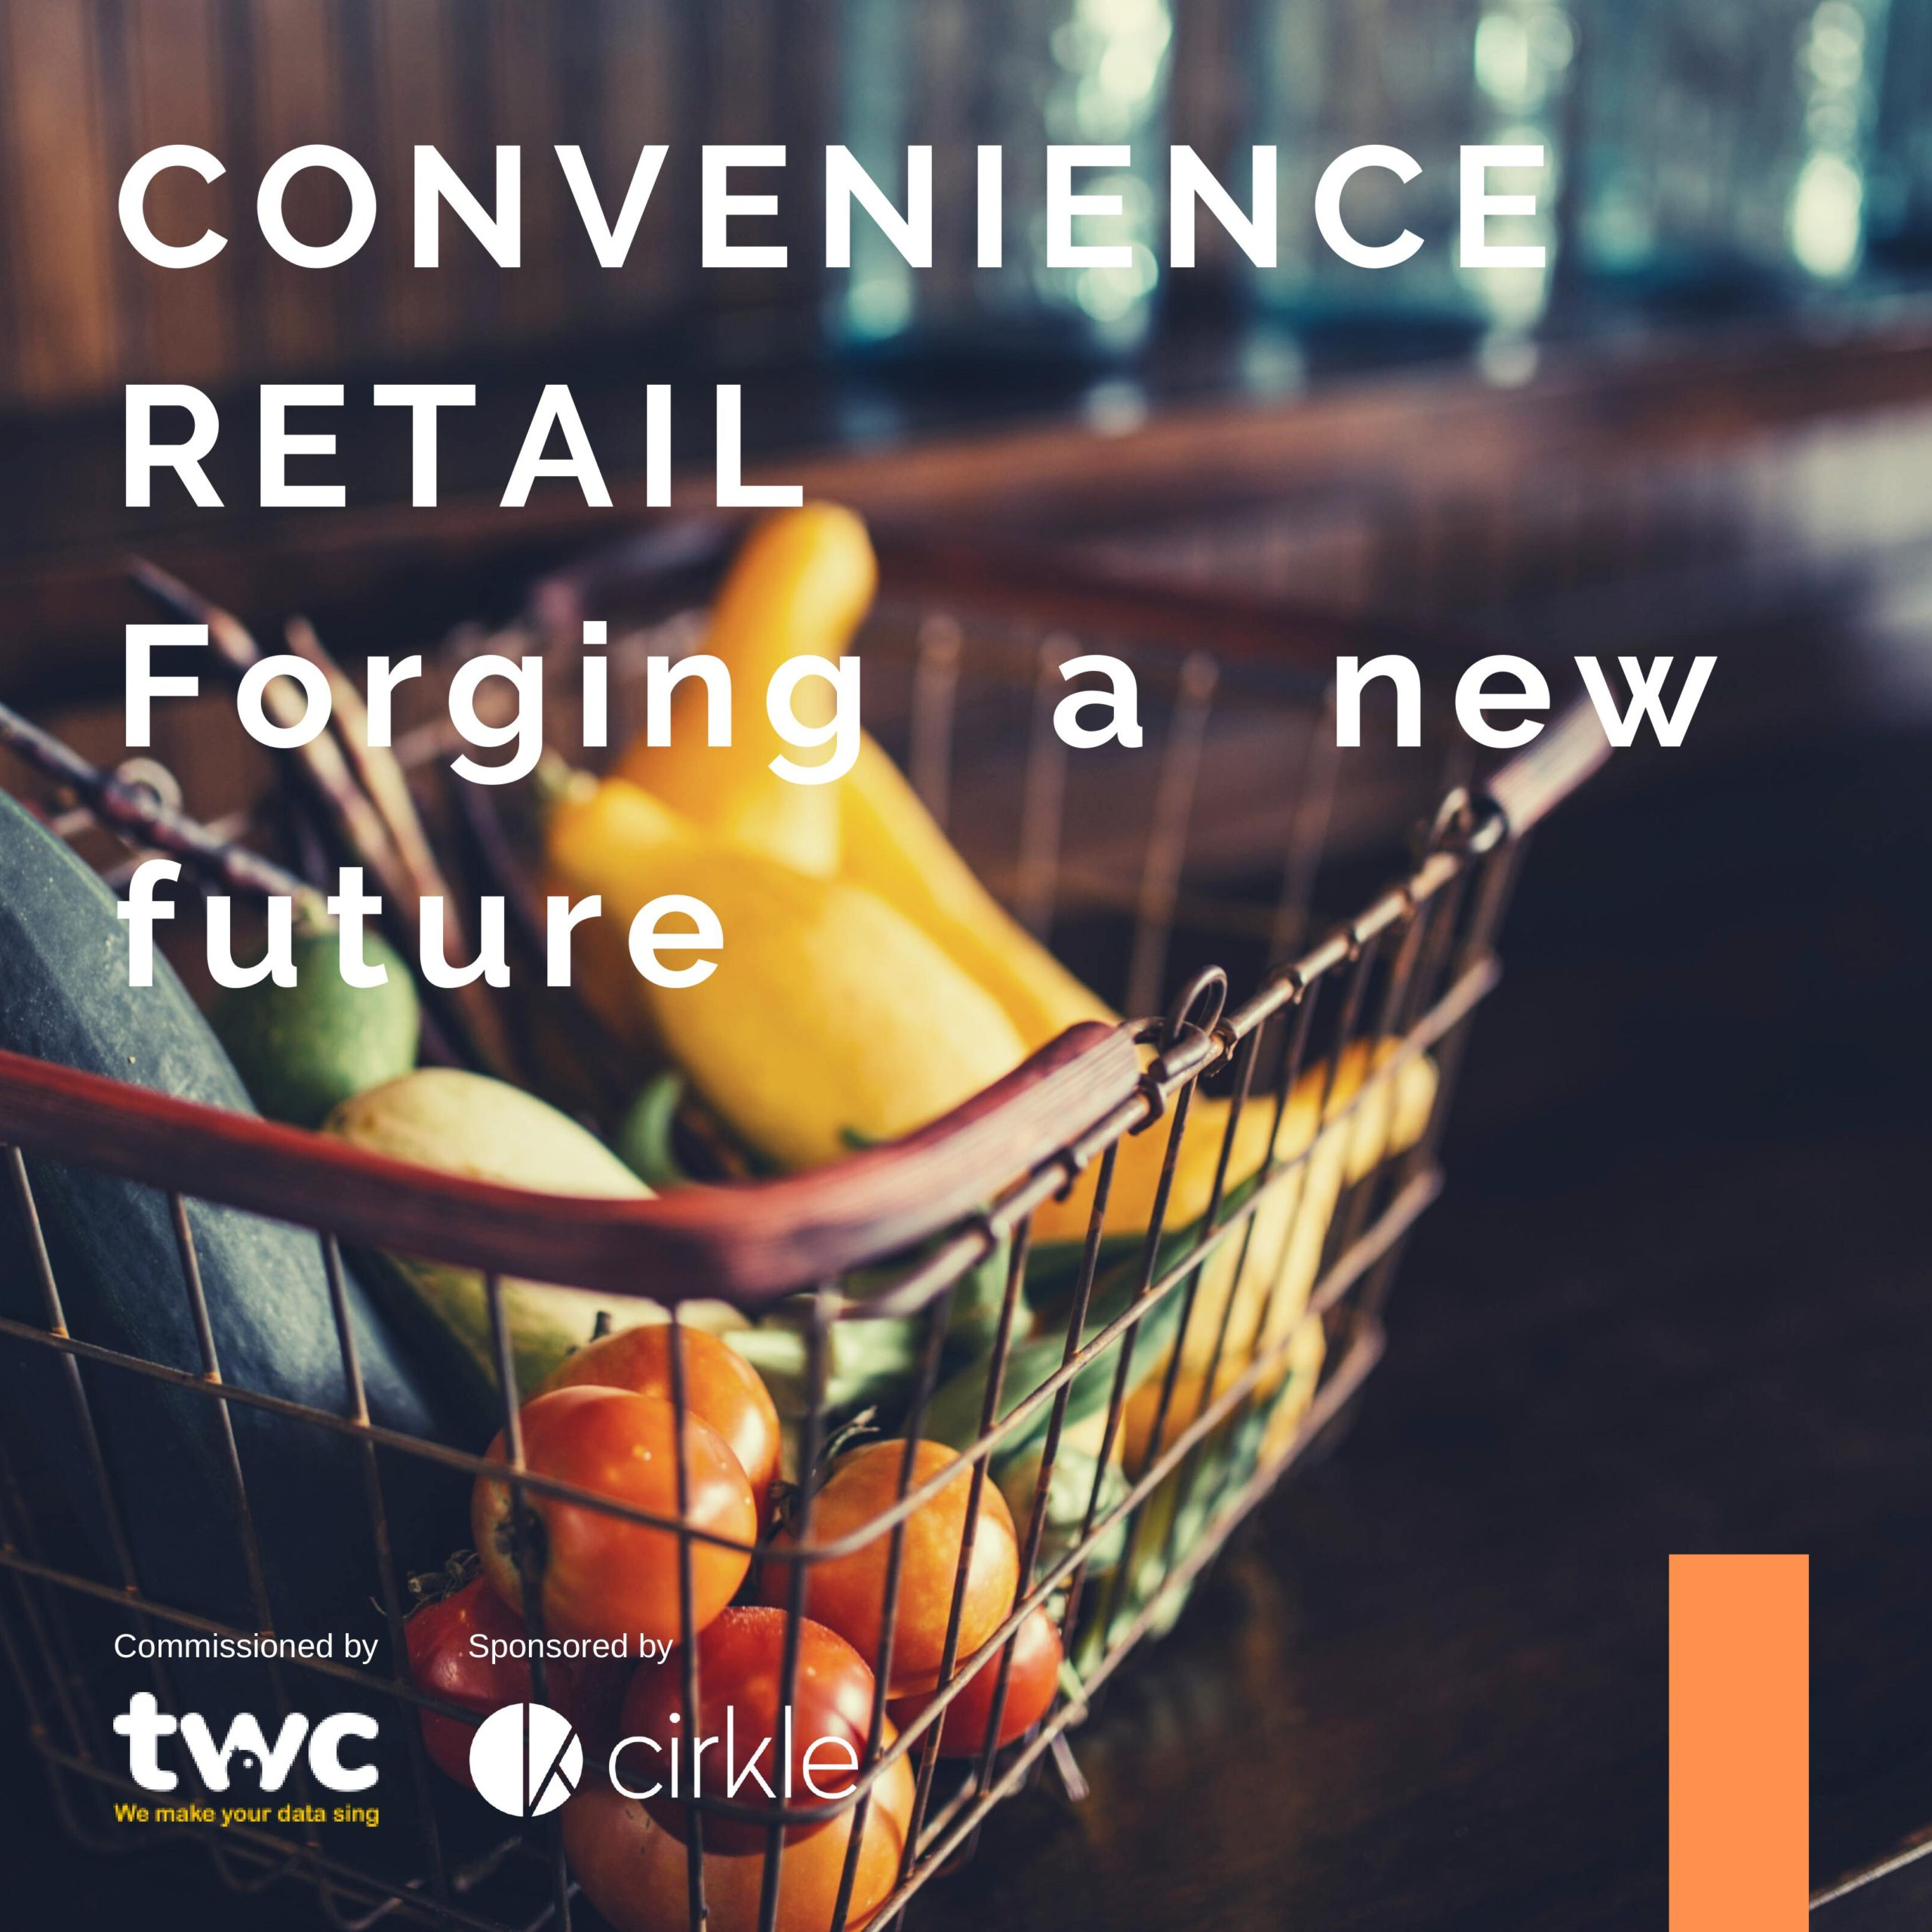 convenience retail insights